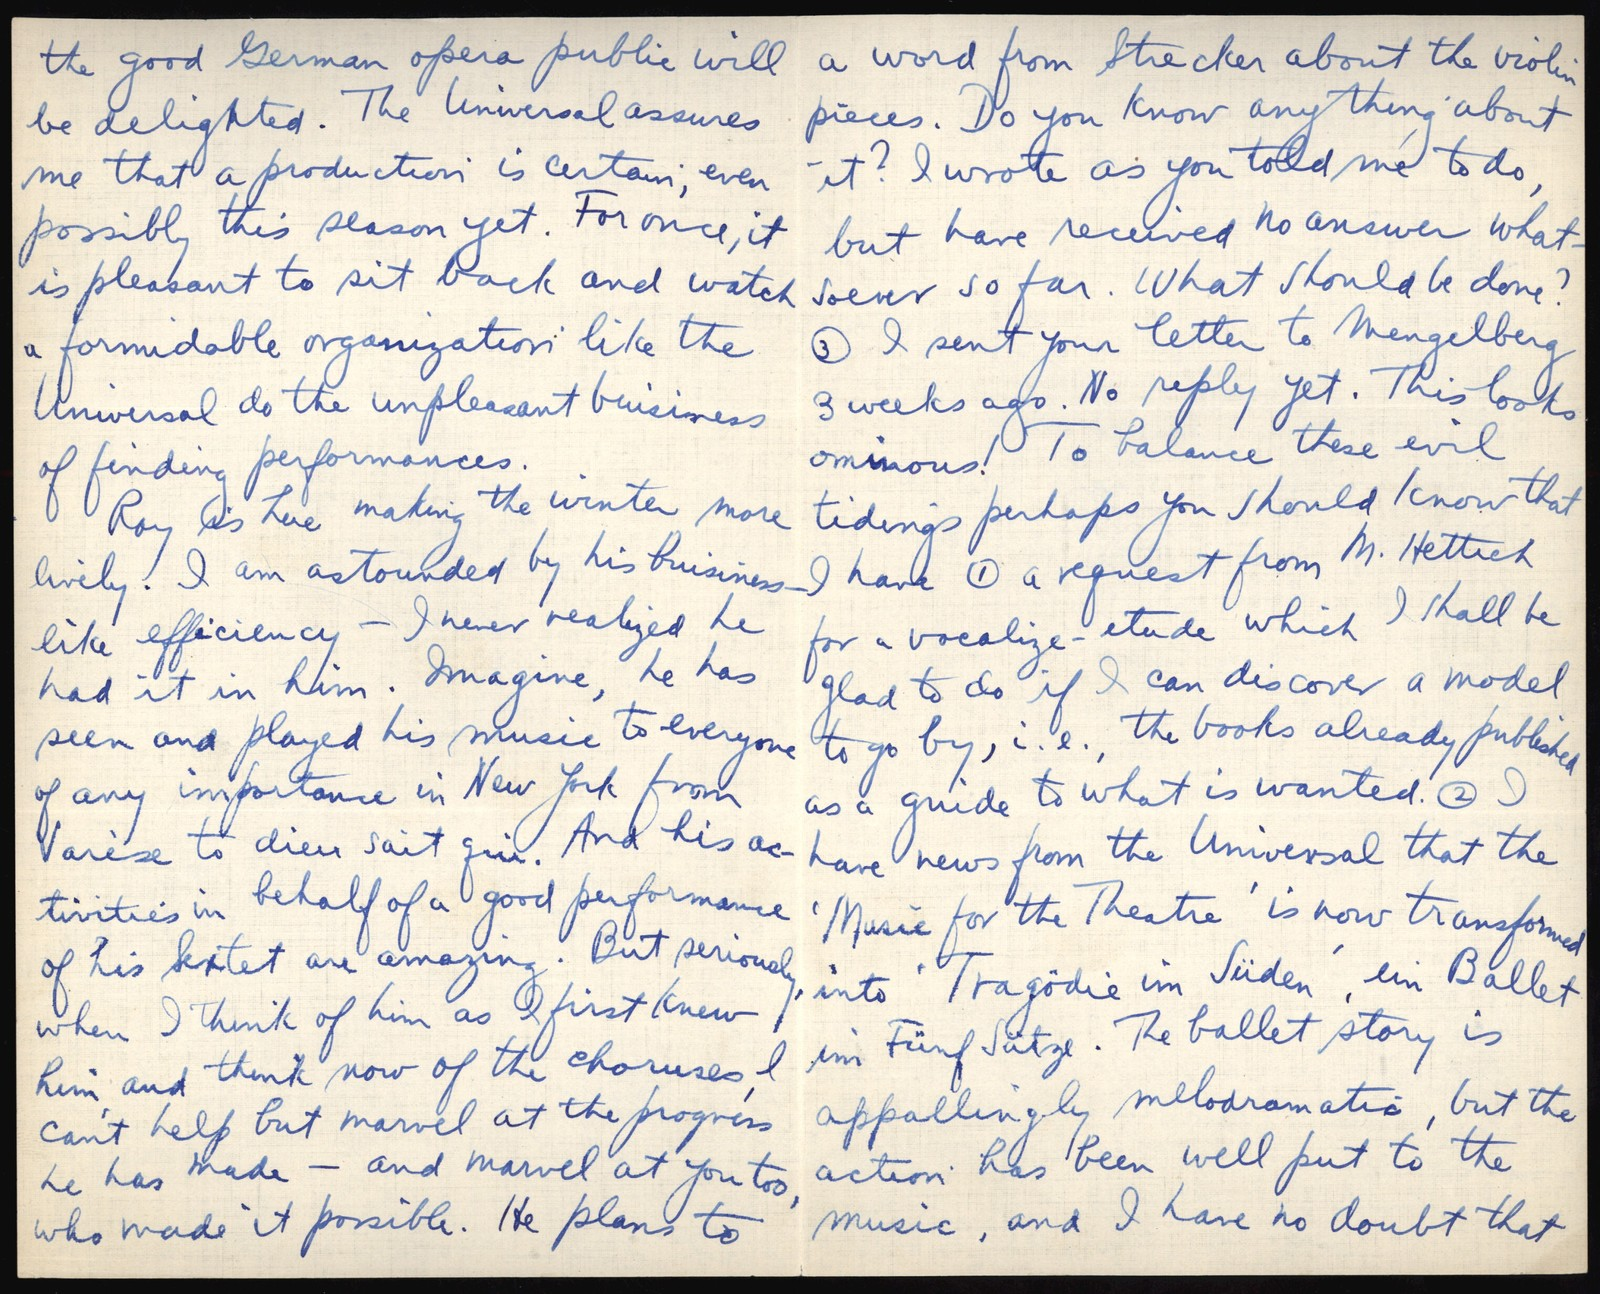 Letter from Aaron Copland to Nadia Boulanger, December 19, 1927.